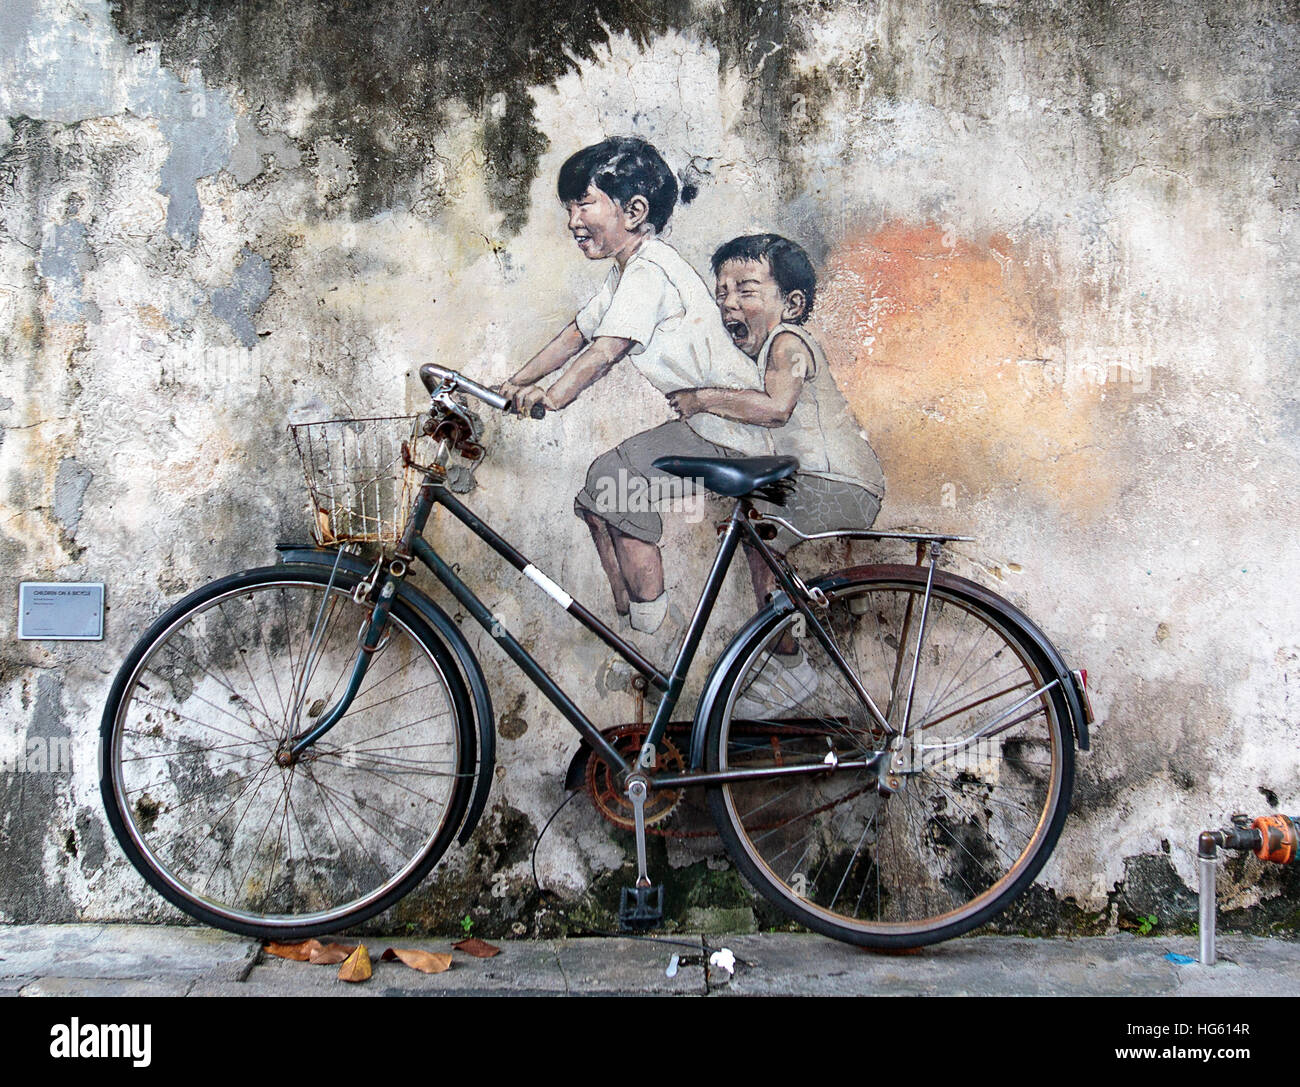 George Town, Penang, Malaysia - November 22: Street art mural by Lithuanian artist Ernest Zacharevic in Georgetown, - Stock Image